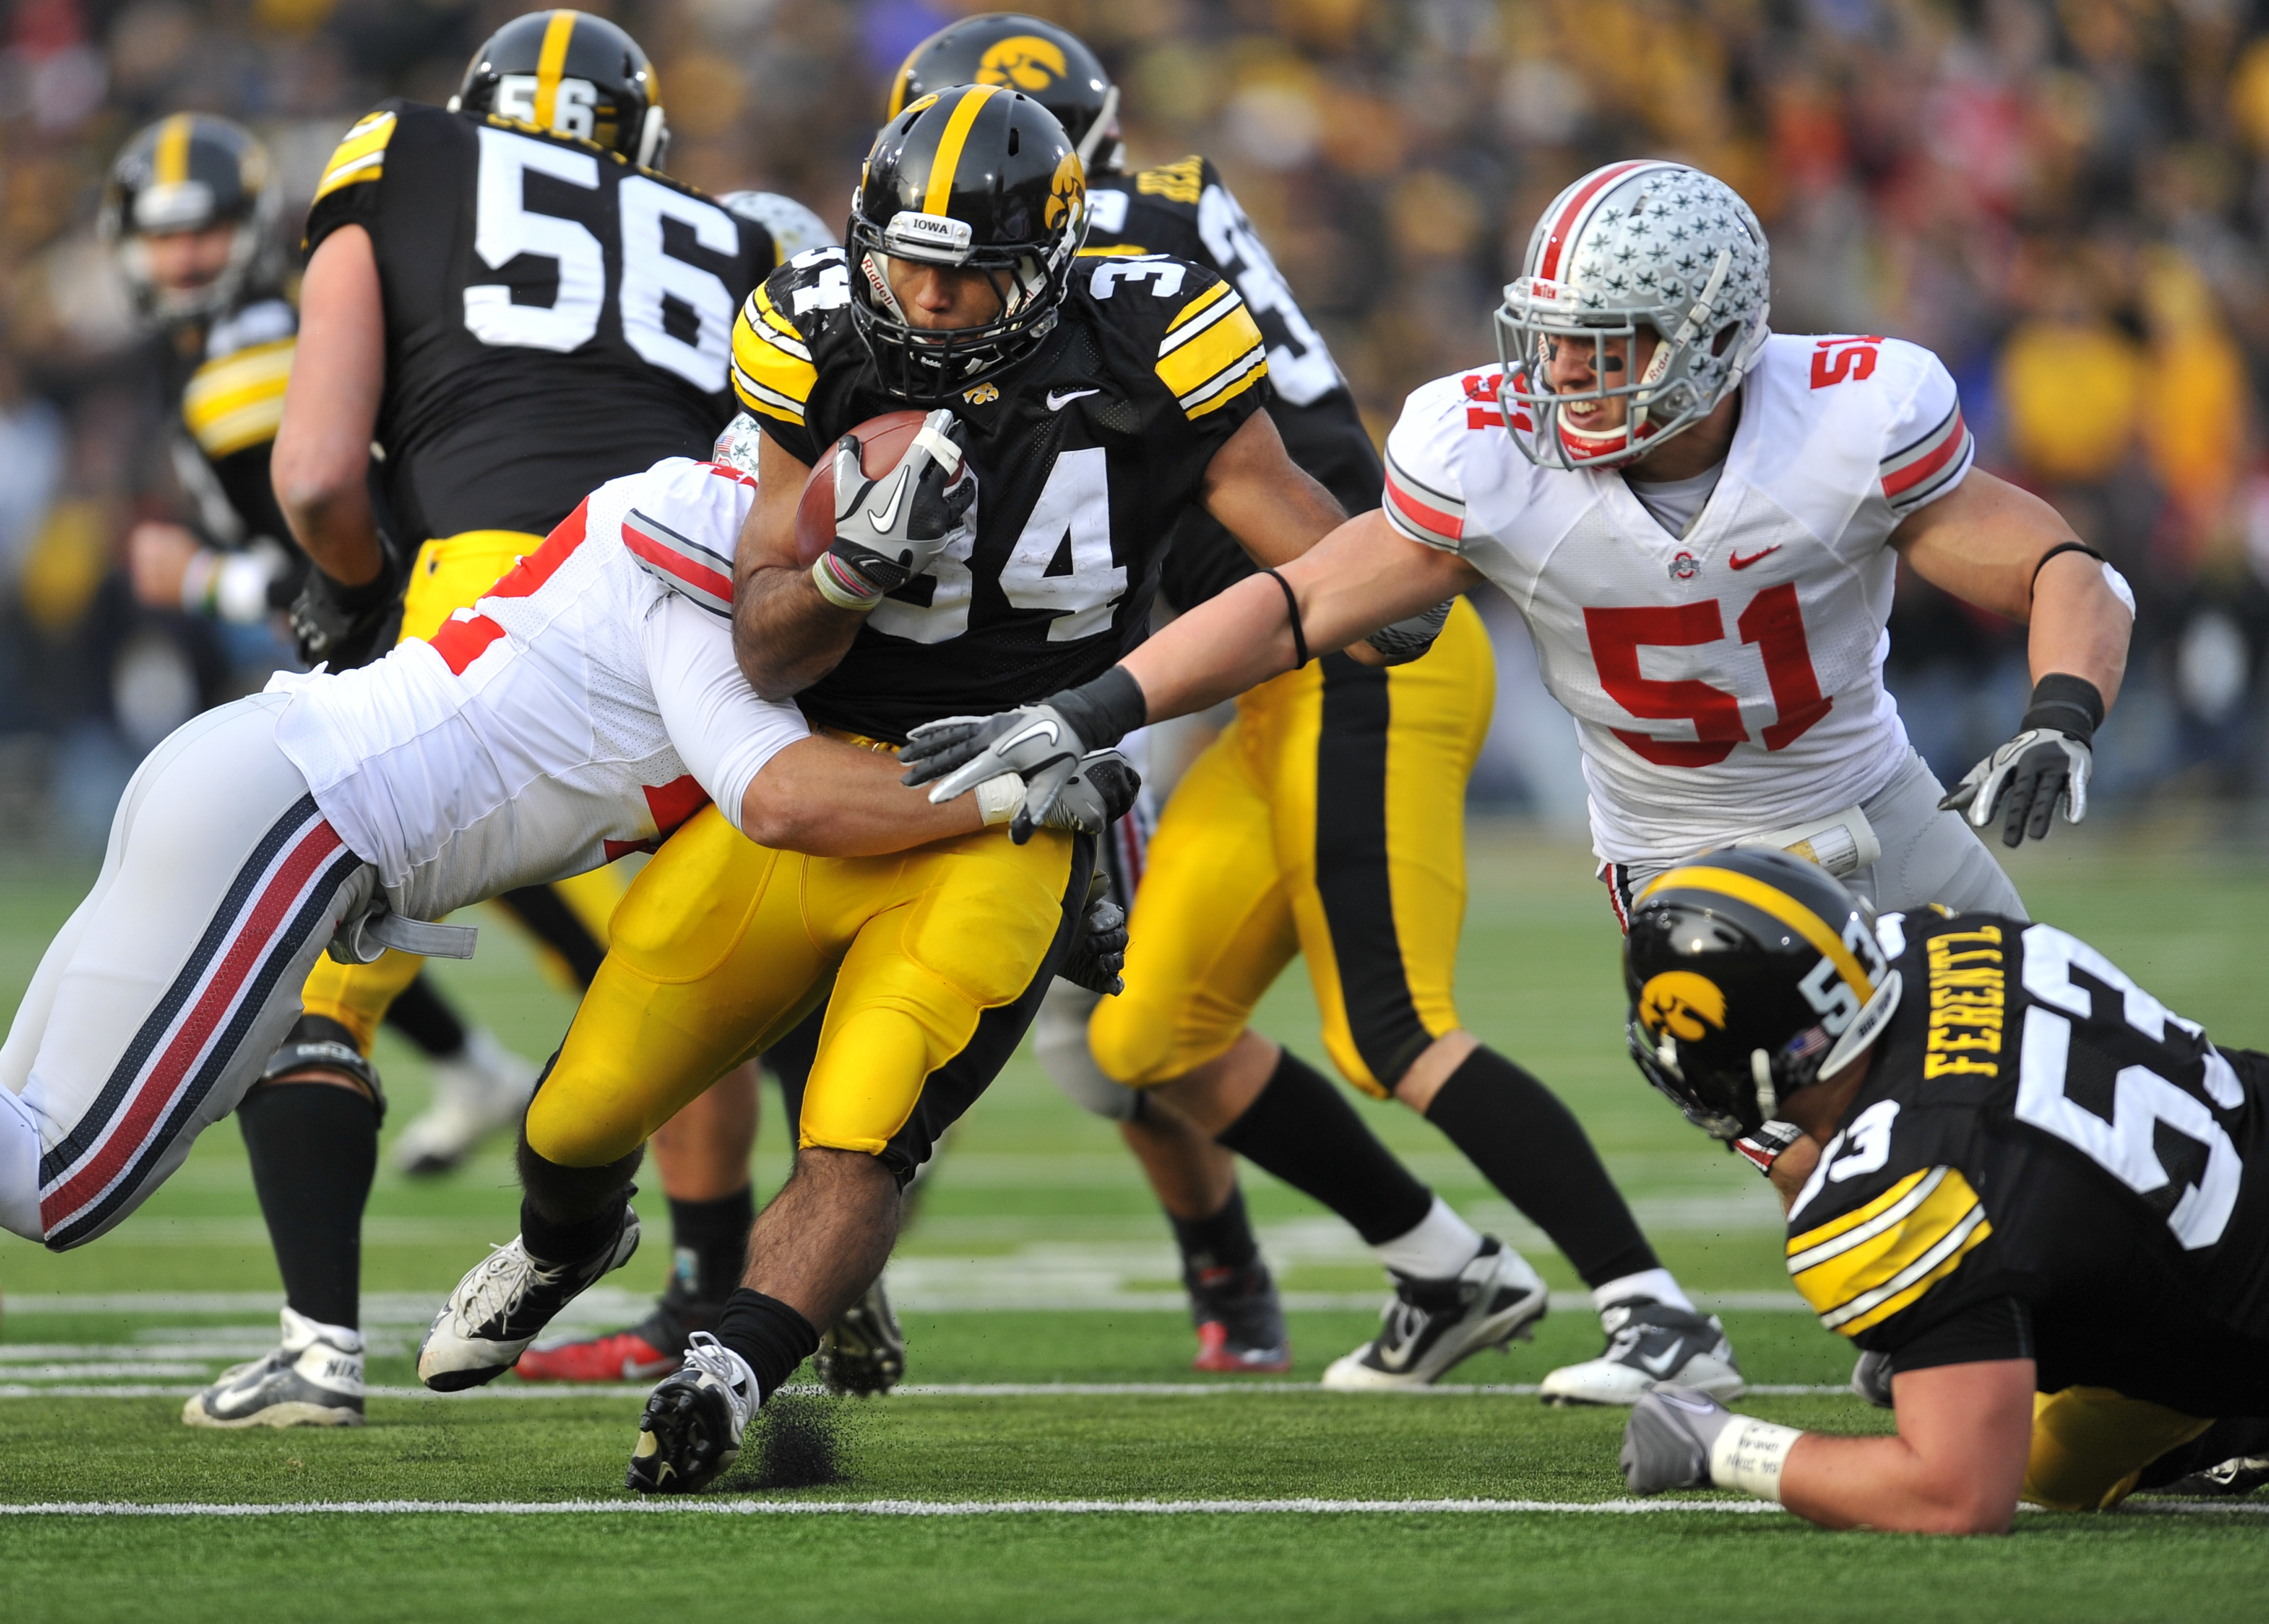 IOWA CITY, IA - NOVEMBER 20:  Running back Marcus Coker #34 of the University of Iowa Hawkeyes is tackled by line backer Andrew Sweat #42 of the Ohio State Buckeyes during the second half of play at Kinnick Stadium on November 20, 2010 in Iowa City, Iowa.